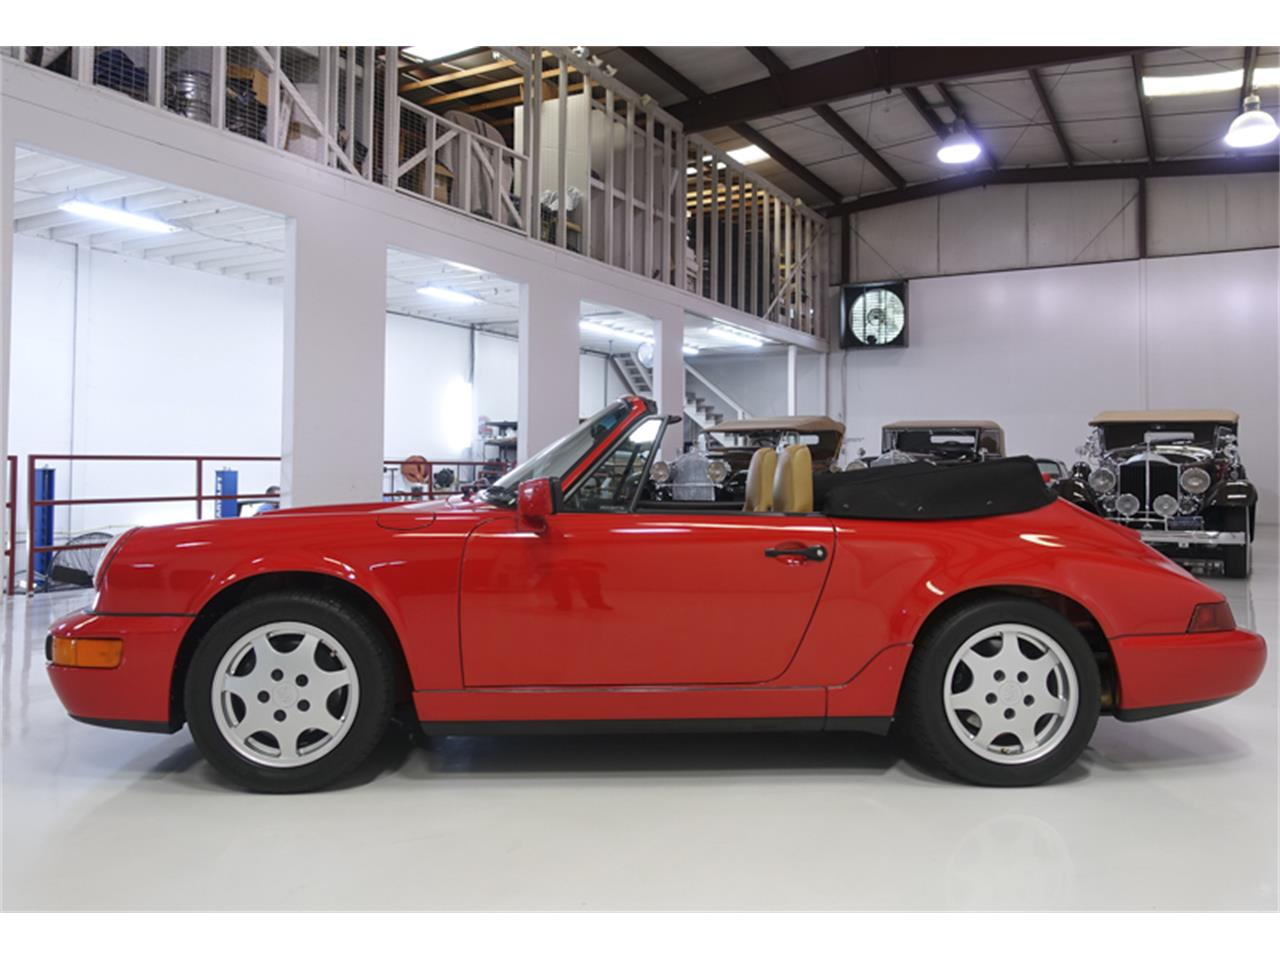 Large Picture of 1990 Porsche 964 Carrera 2 located in Saint Louis Missouri - $59,900.00 - PVNV